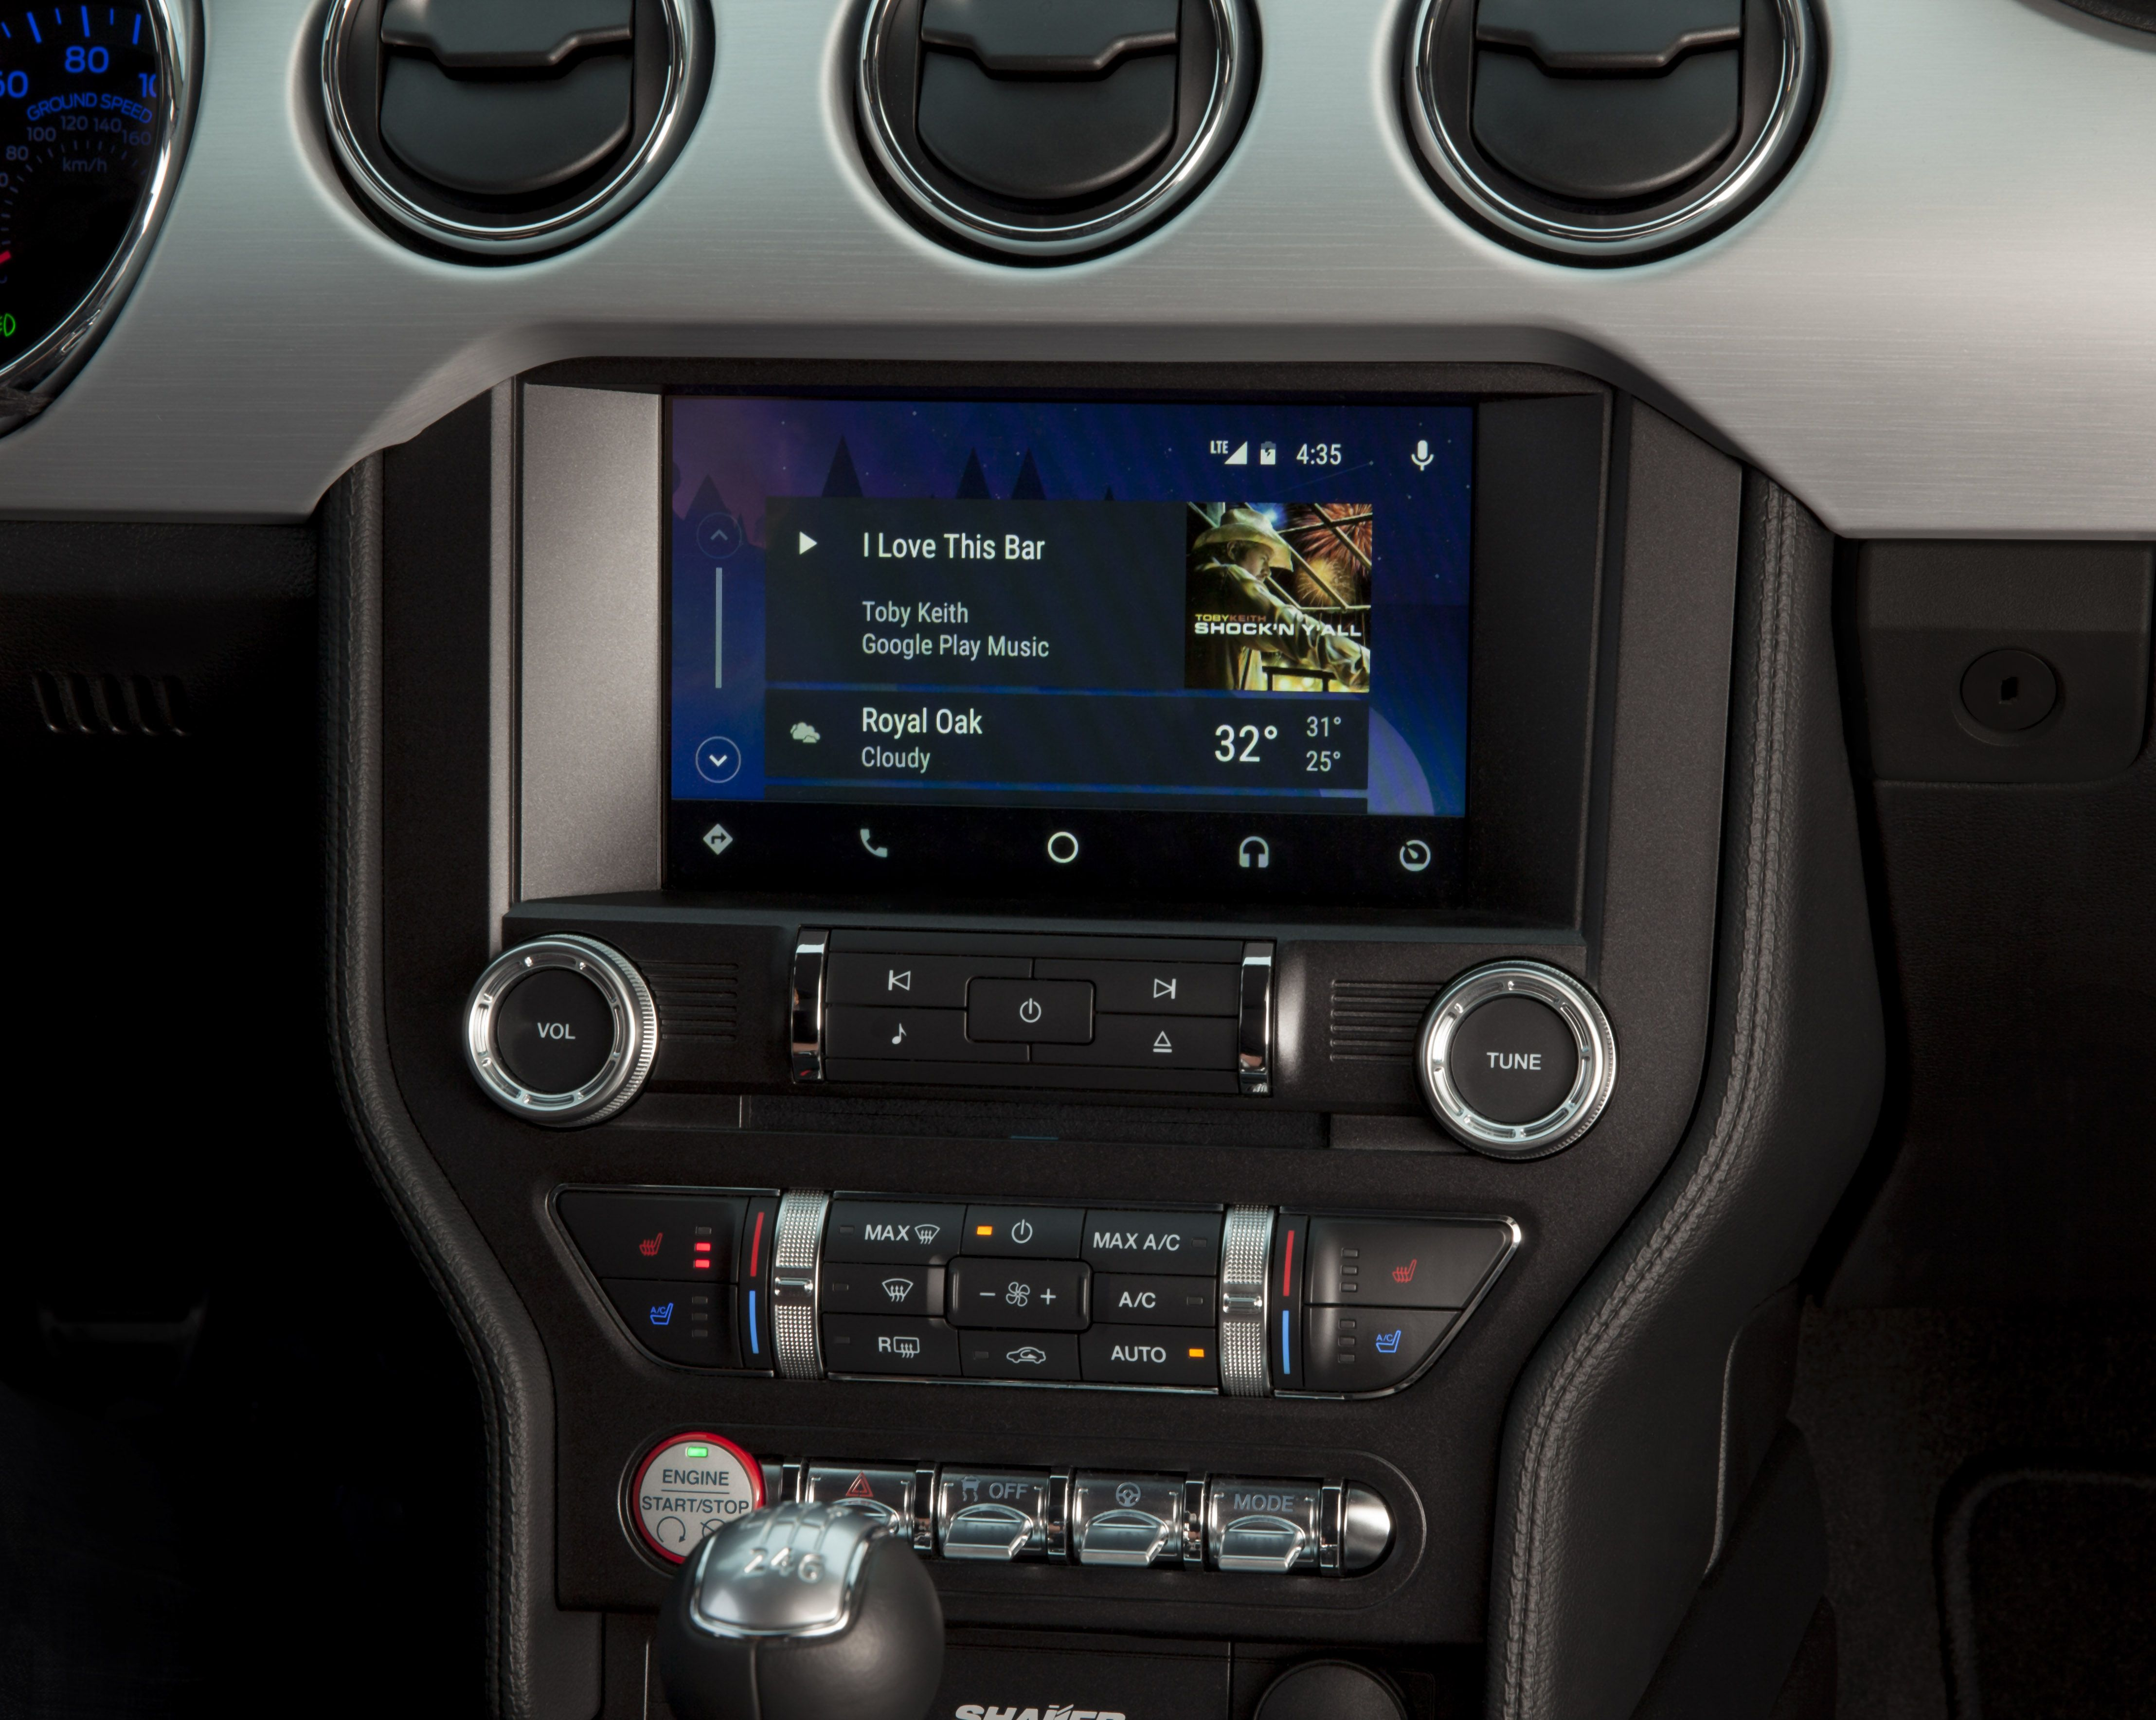 Ford bringing CarPlay to all 2017 models